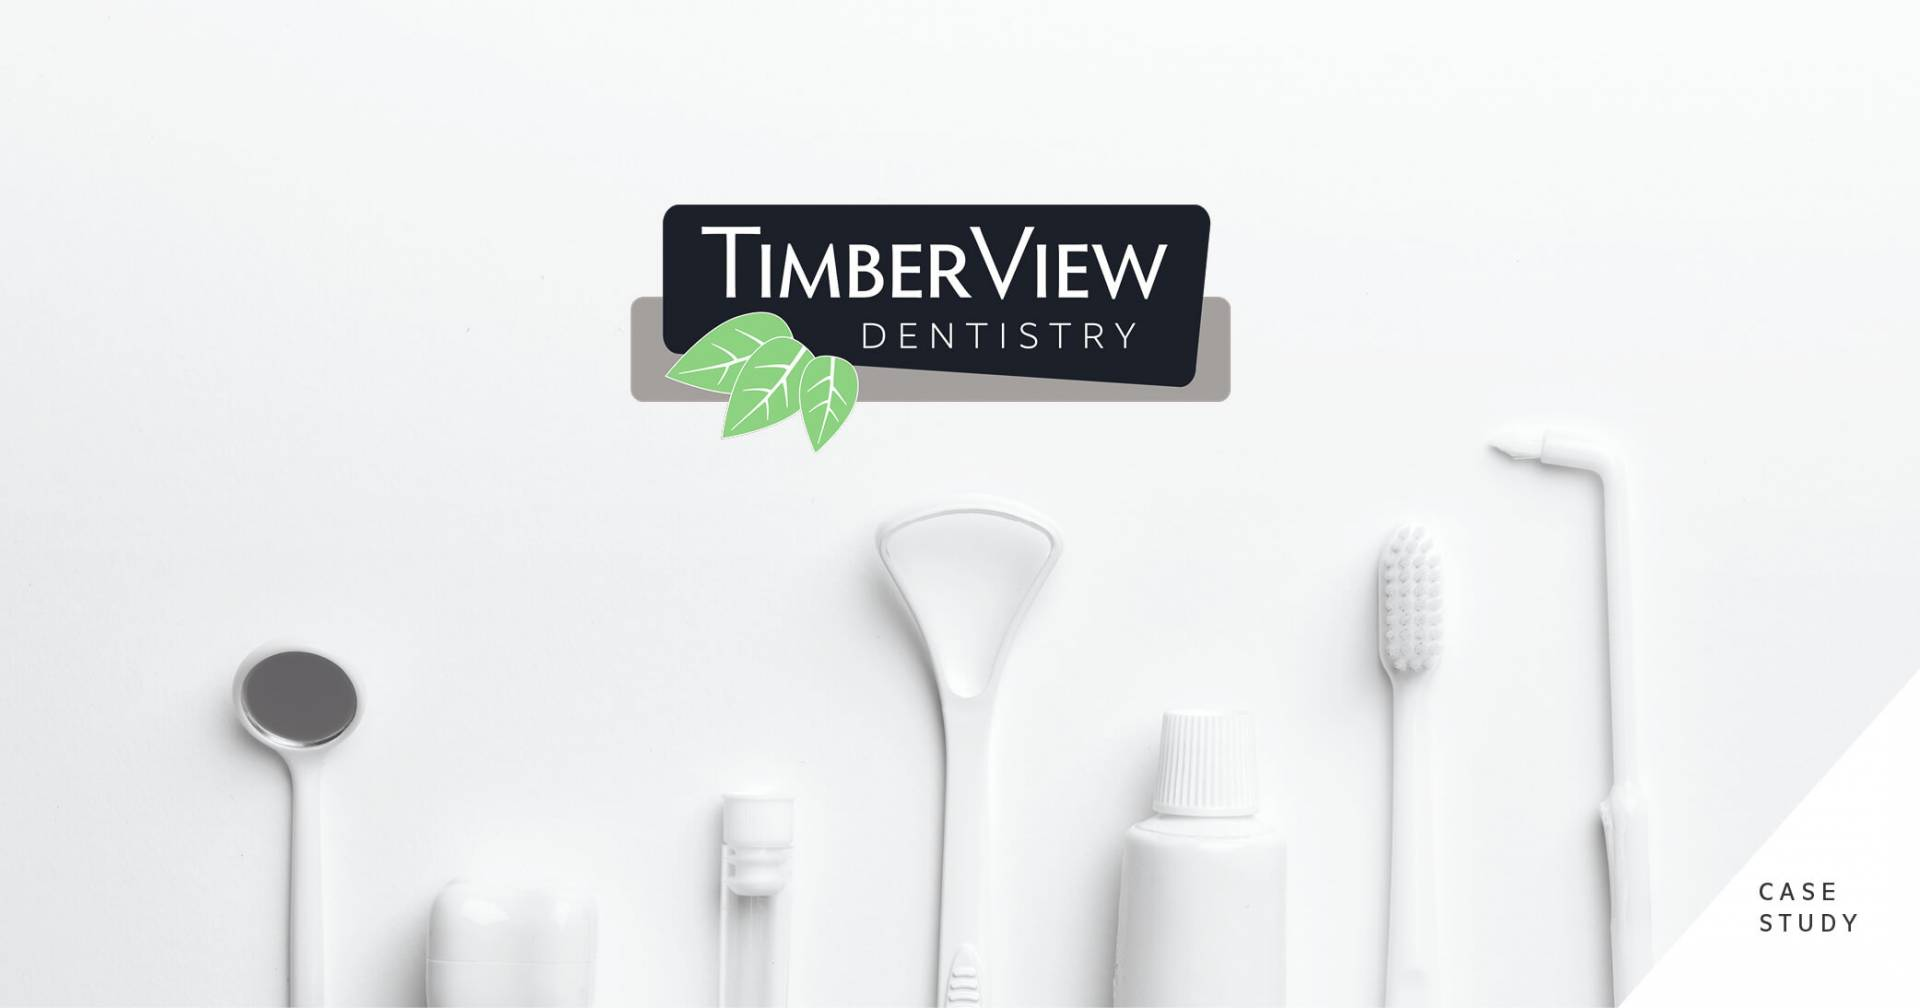 Timberview Dentistry